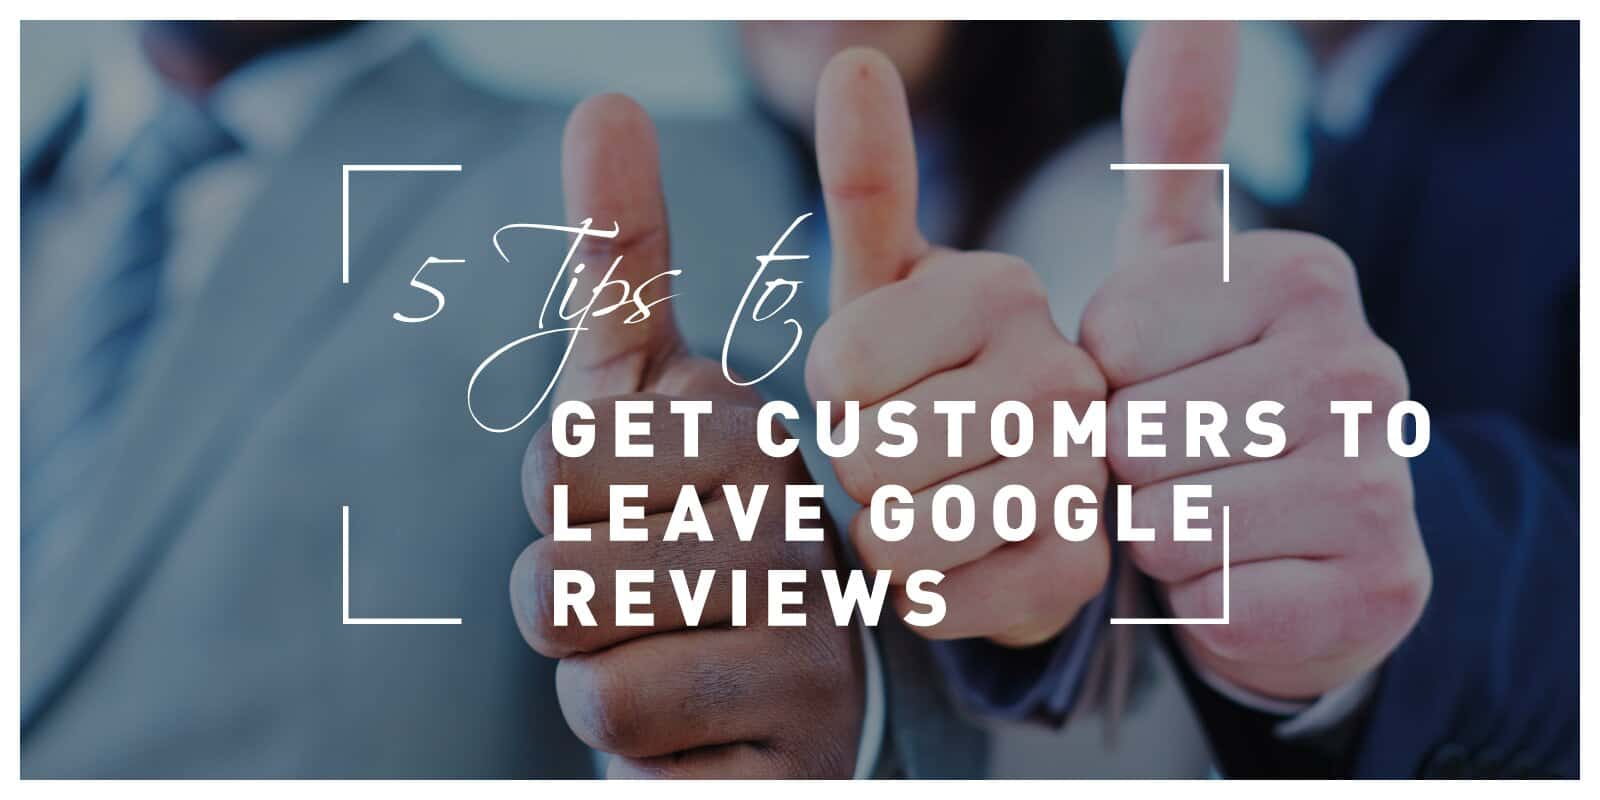 5 Tips to Get Customers to Leave Google Reviews and Thus Help Promote Your Business for Free